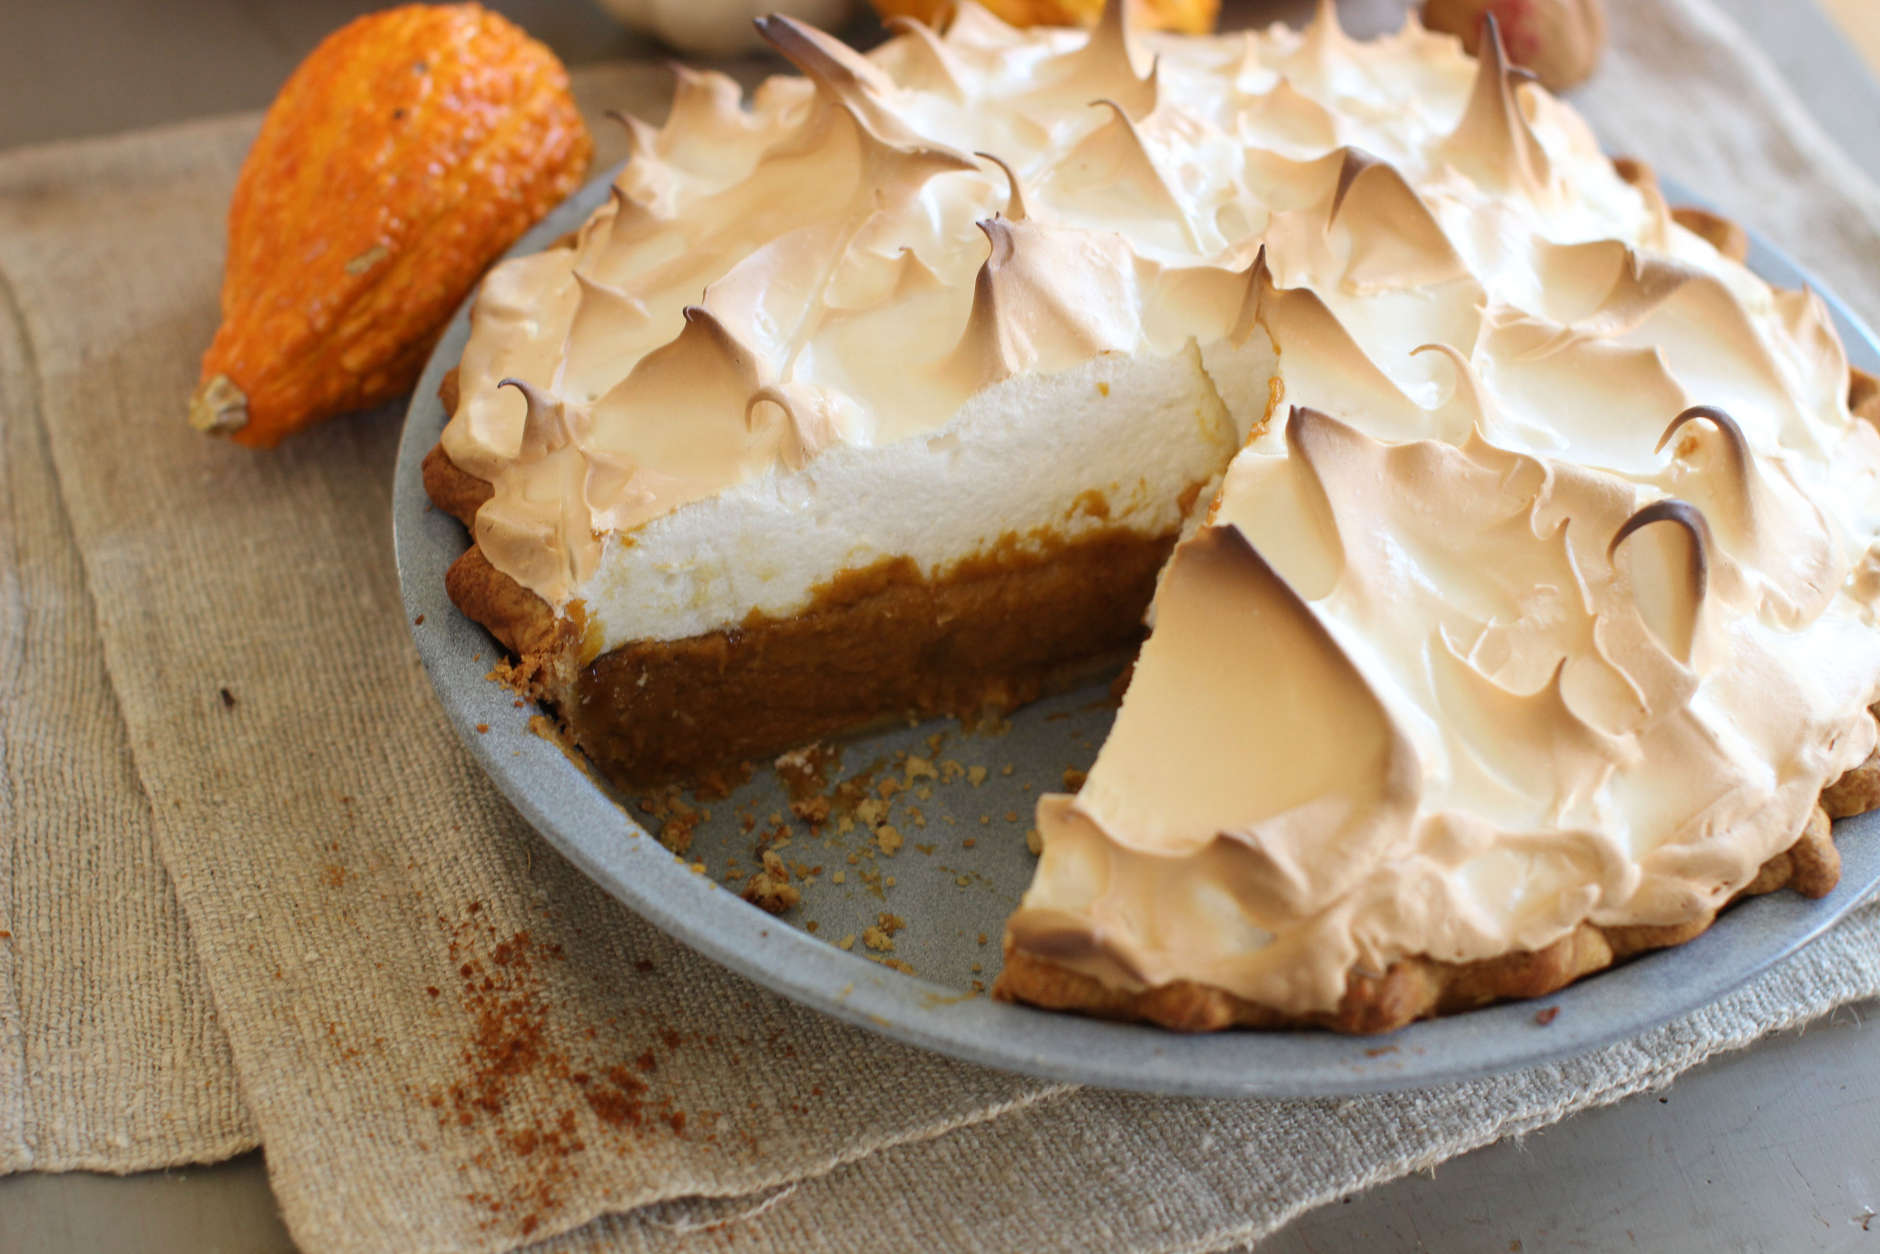 This Oct. 12, 2015 photo shows citrus pumpkin meringue pie in Concord, NH. This Thanksgiving pie is deliciously deceptive, hidden under the meringue is a classic pumpkin pie spiked with just a hint of citrus. (AP Photo/Matthew Mead)